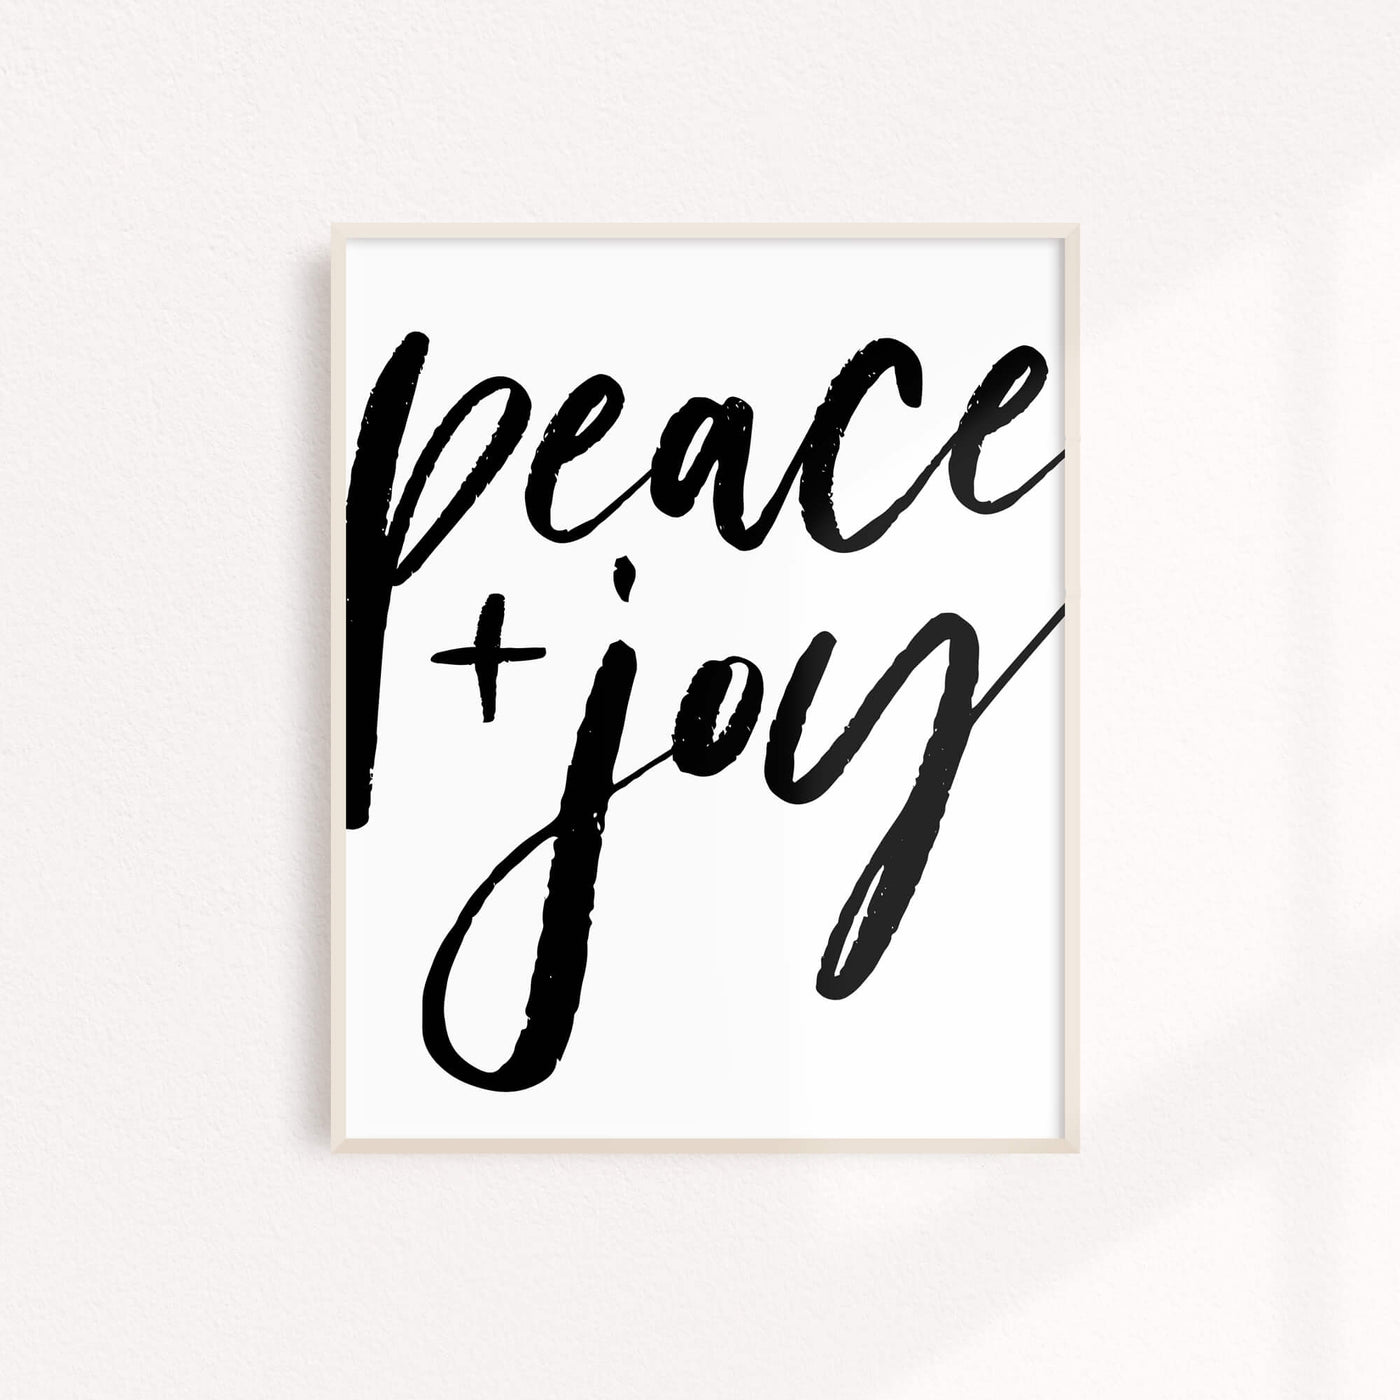 Peace + Joy - Art Print 11 x 14